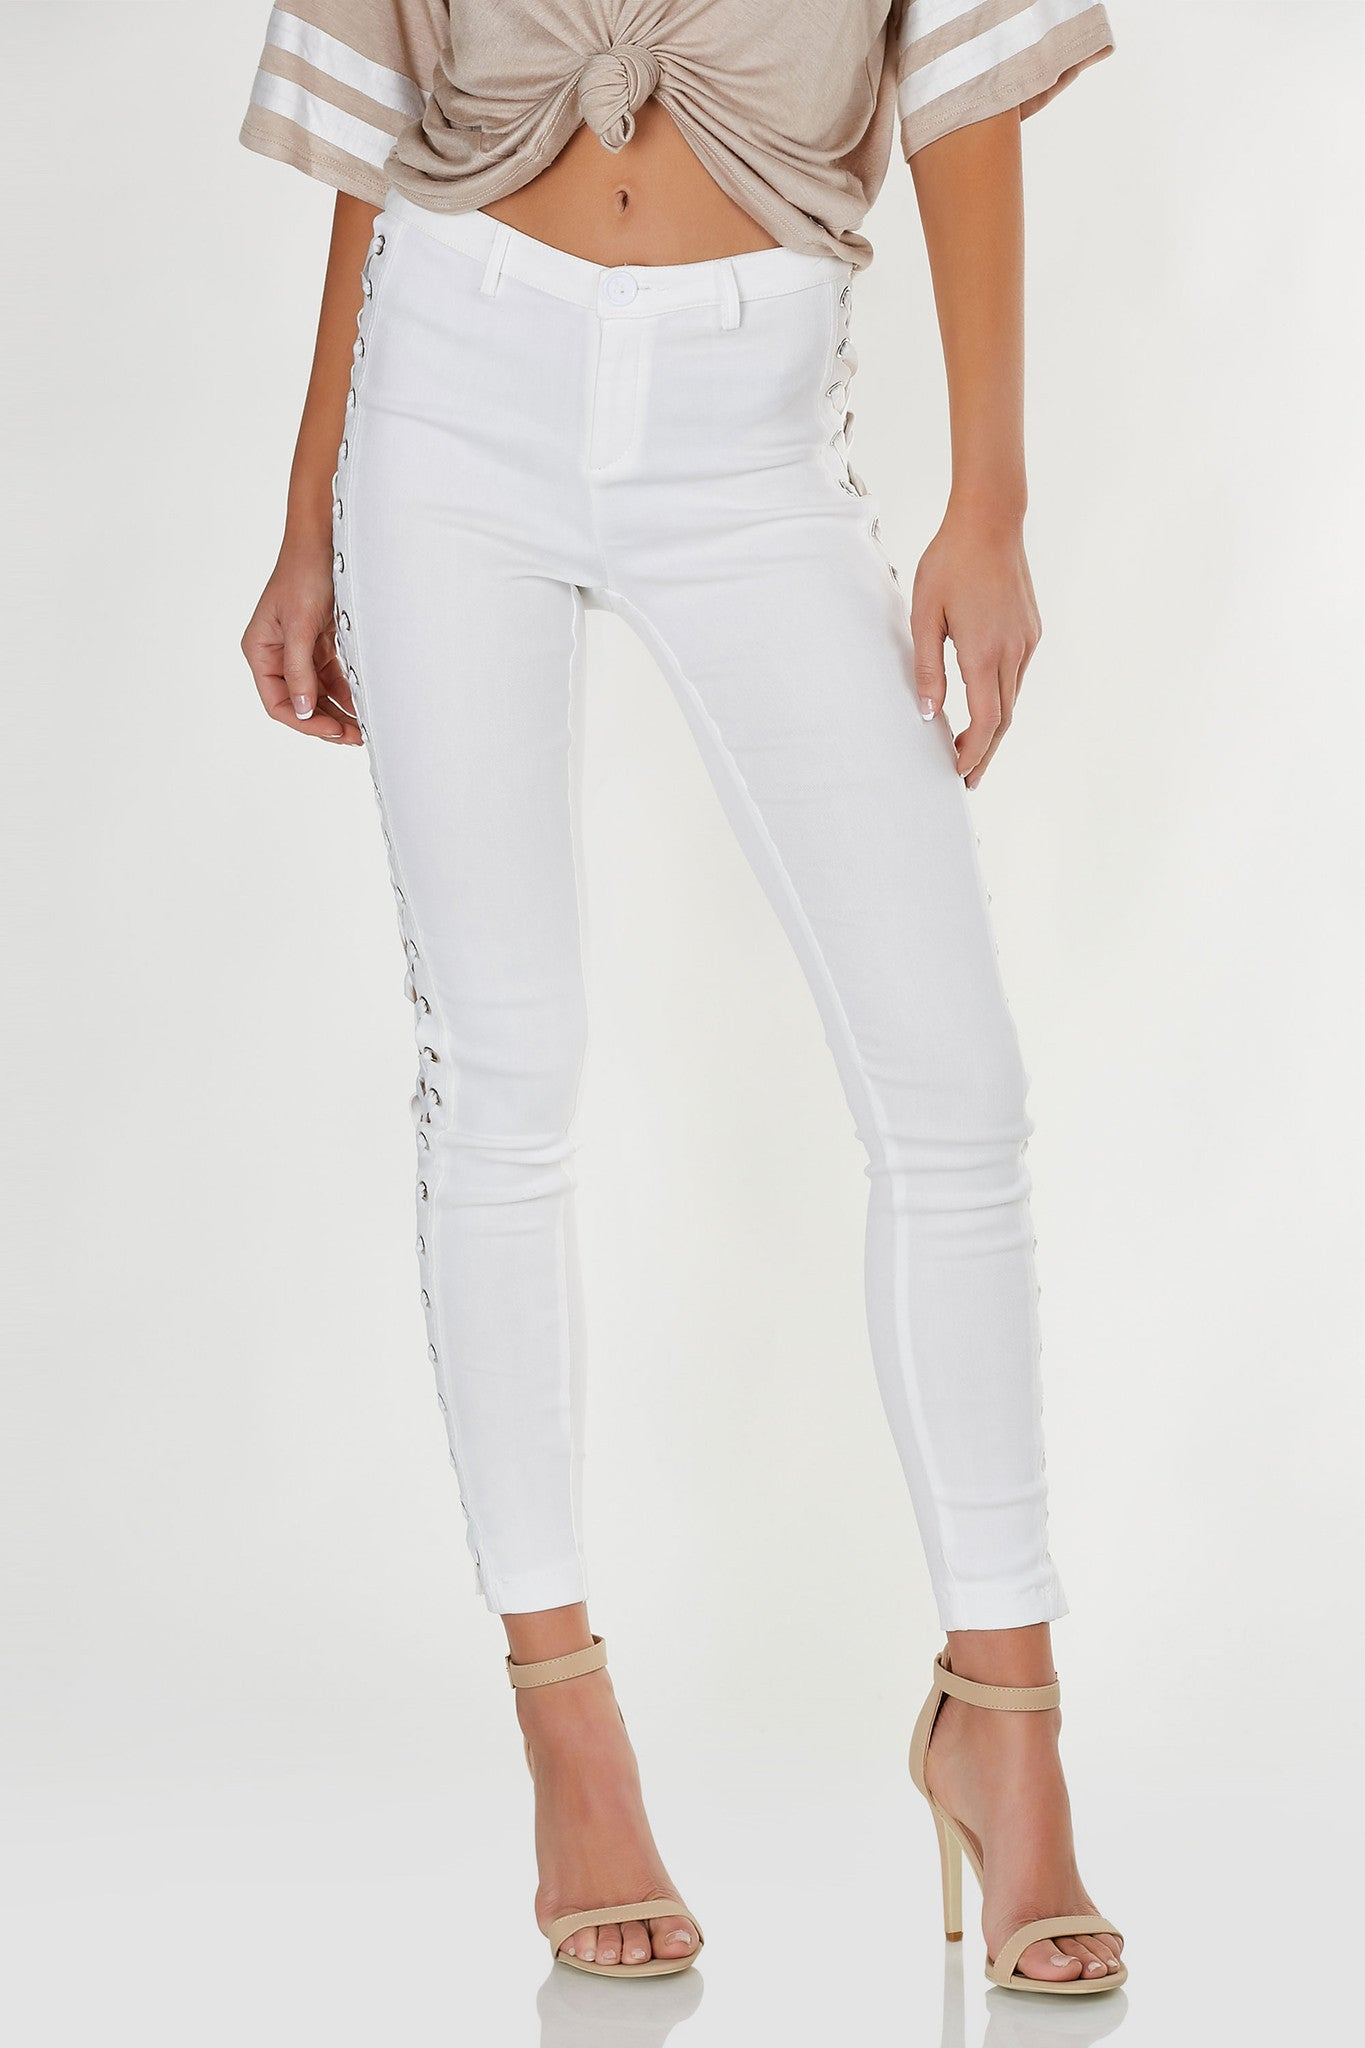 Stretchy mid rise pants with slim fit and lace up design on each side.